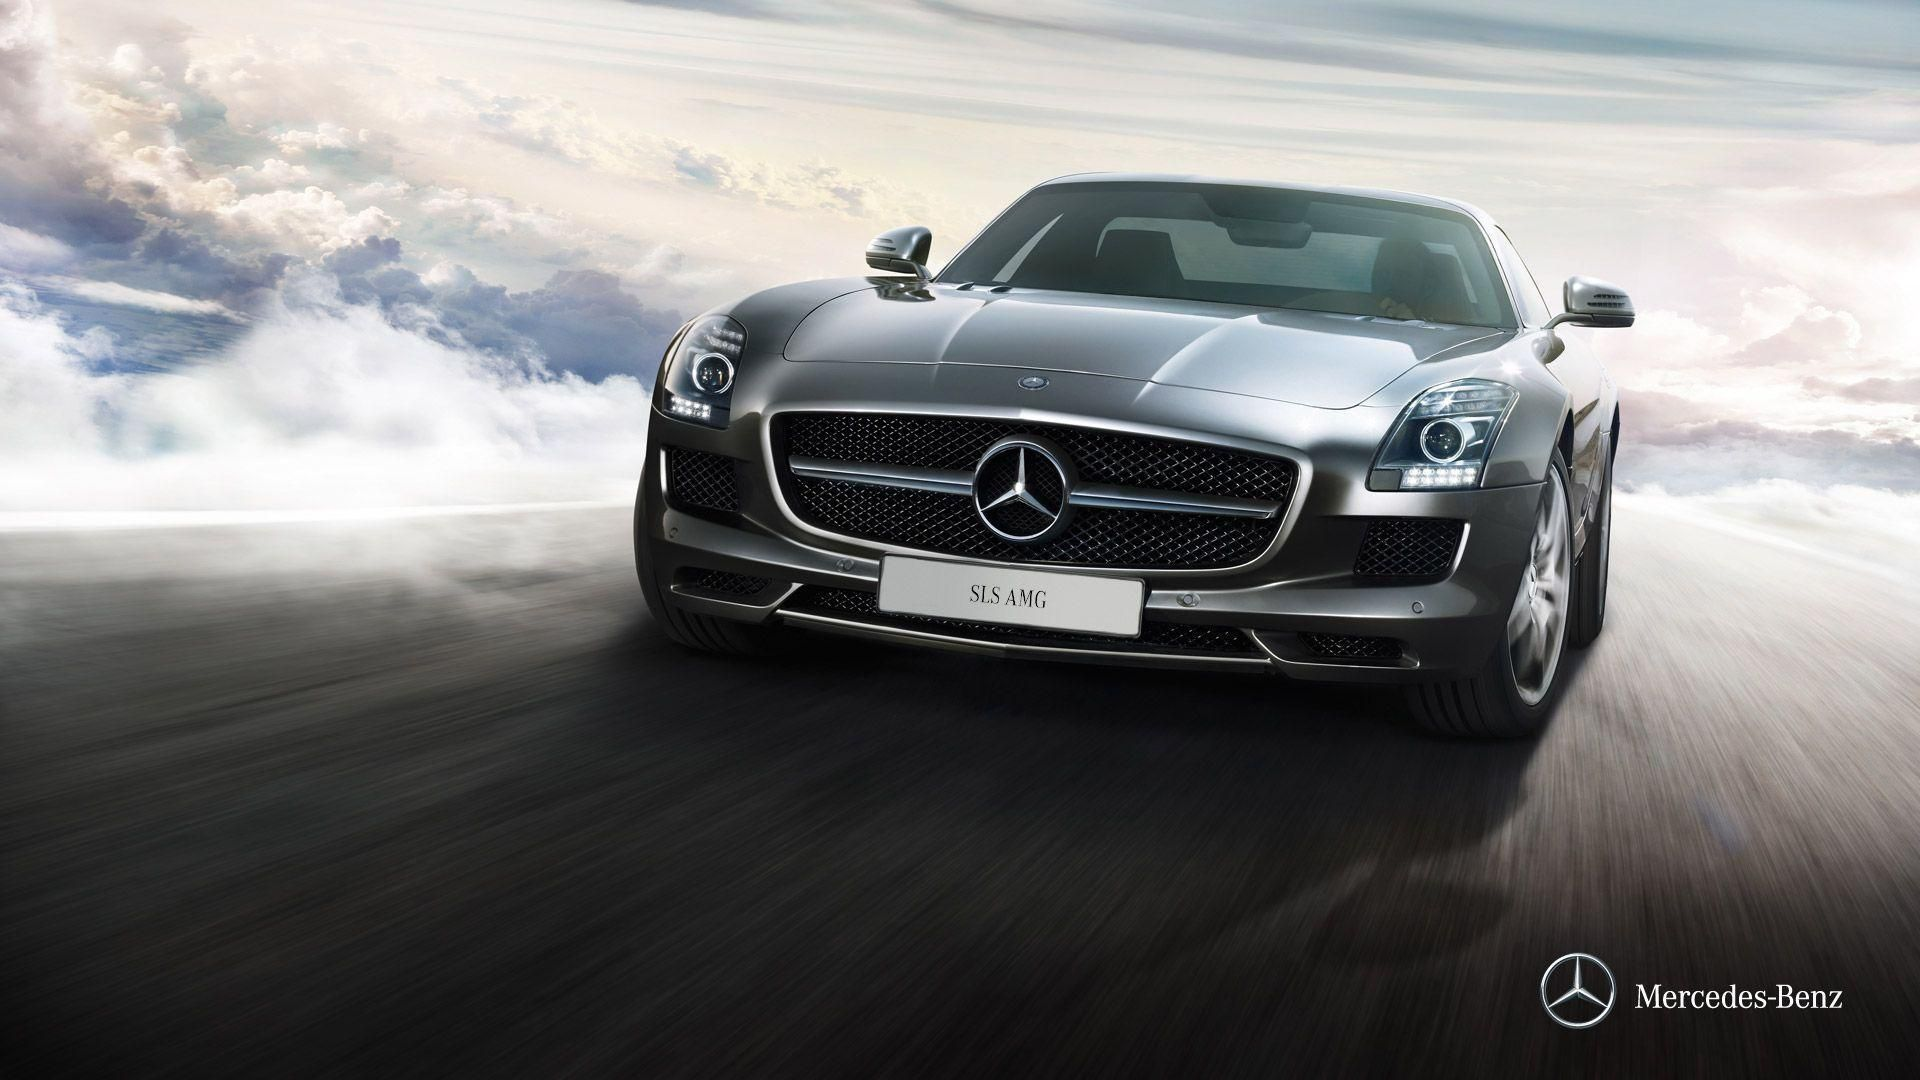 Mercedes Benz Free Full Hd Wallpapers 32 With Images